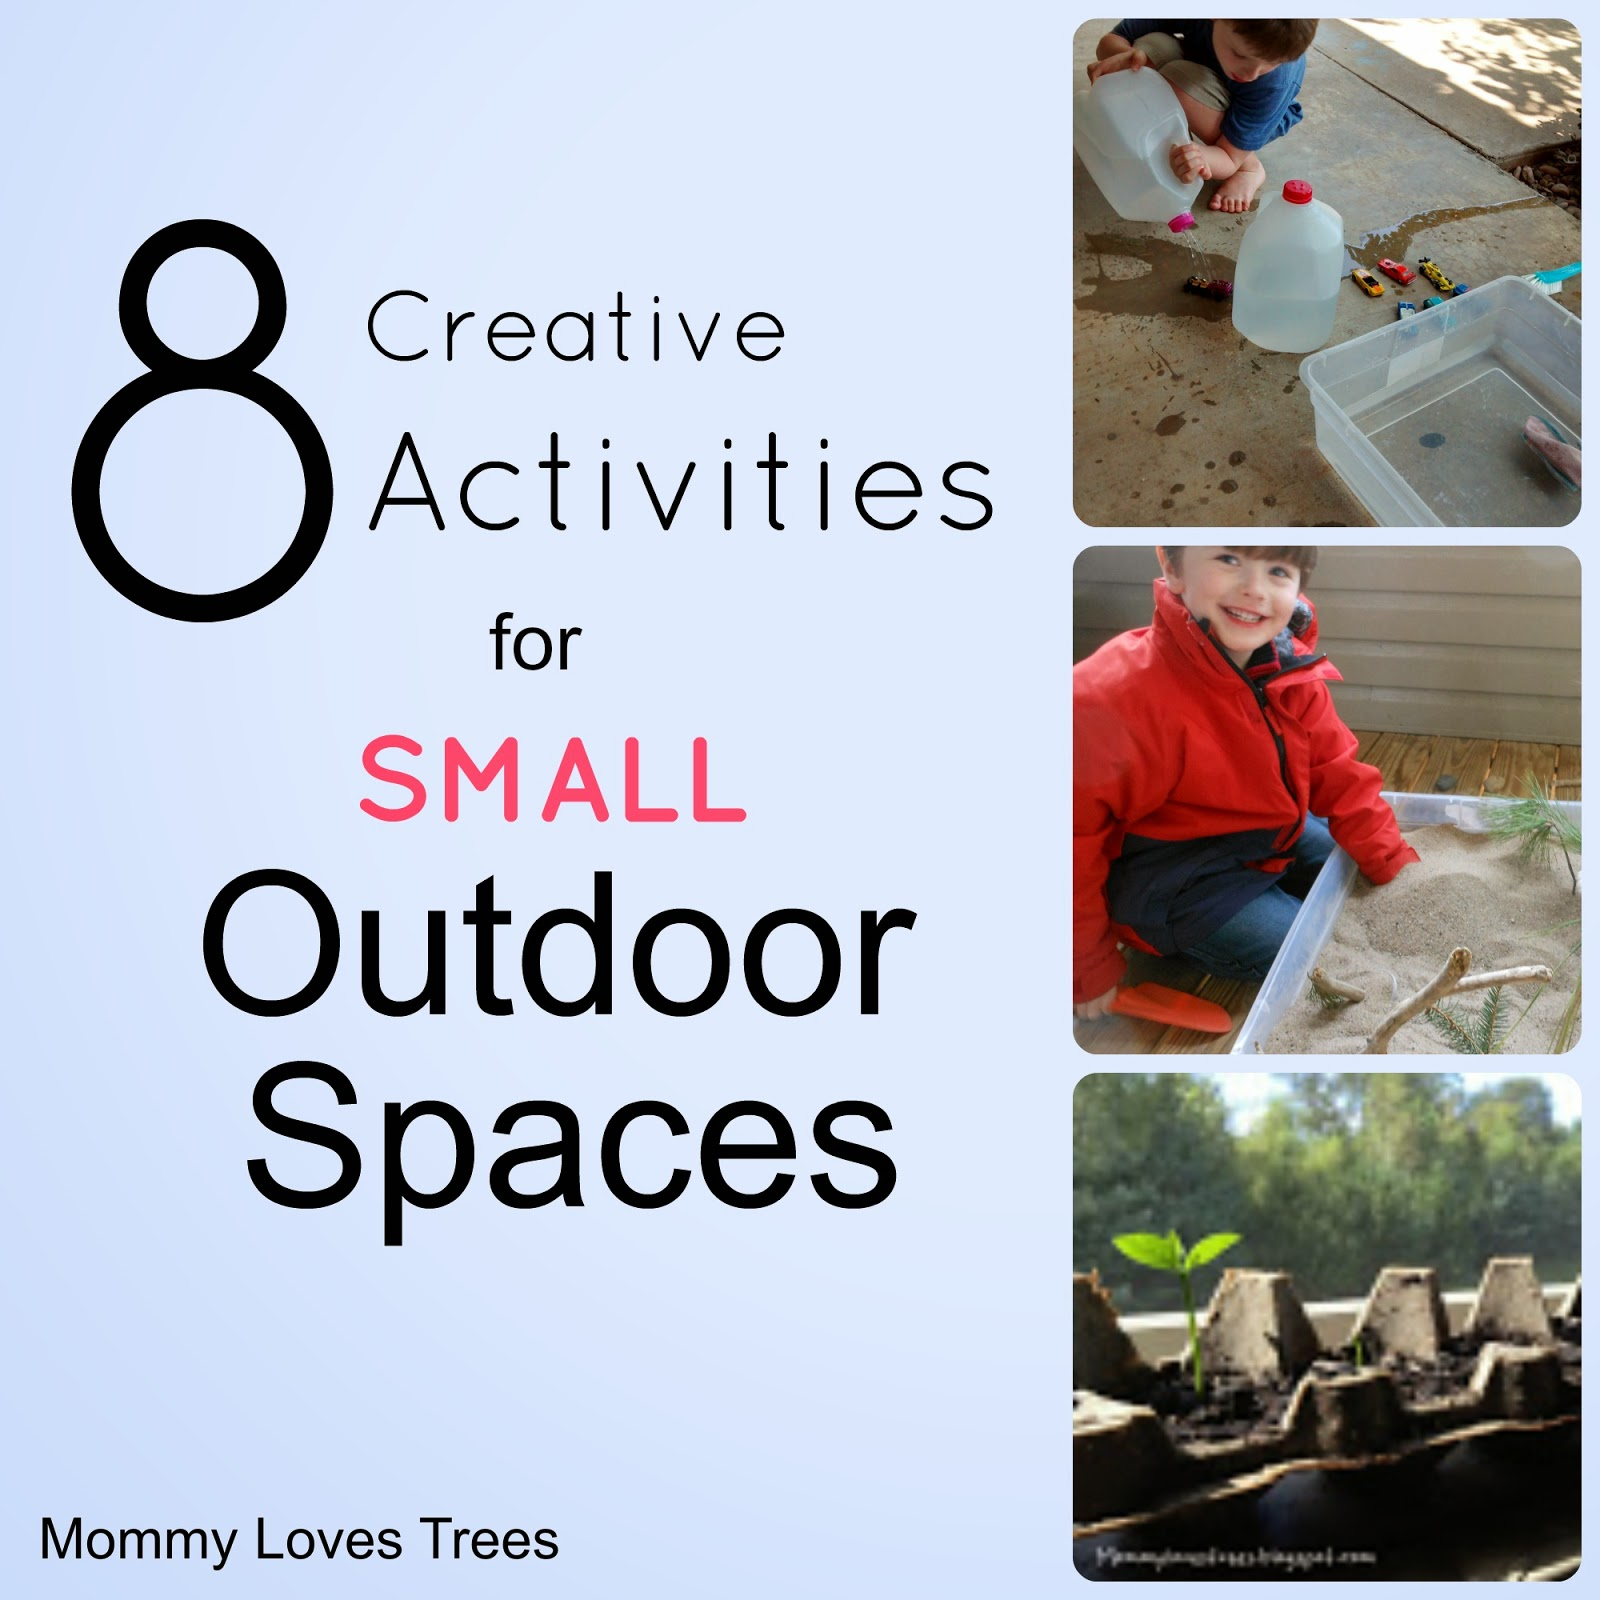 Creative activities for small outdoor spaces.